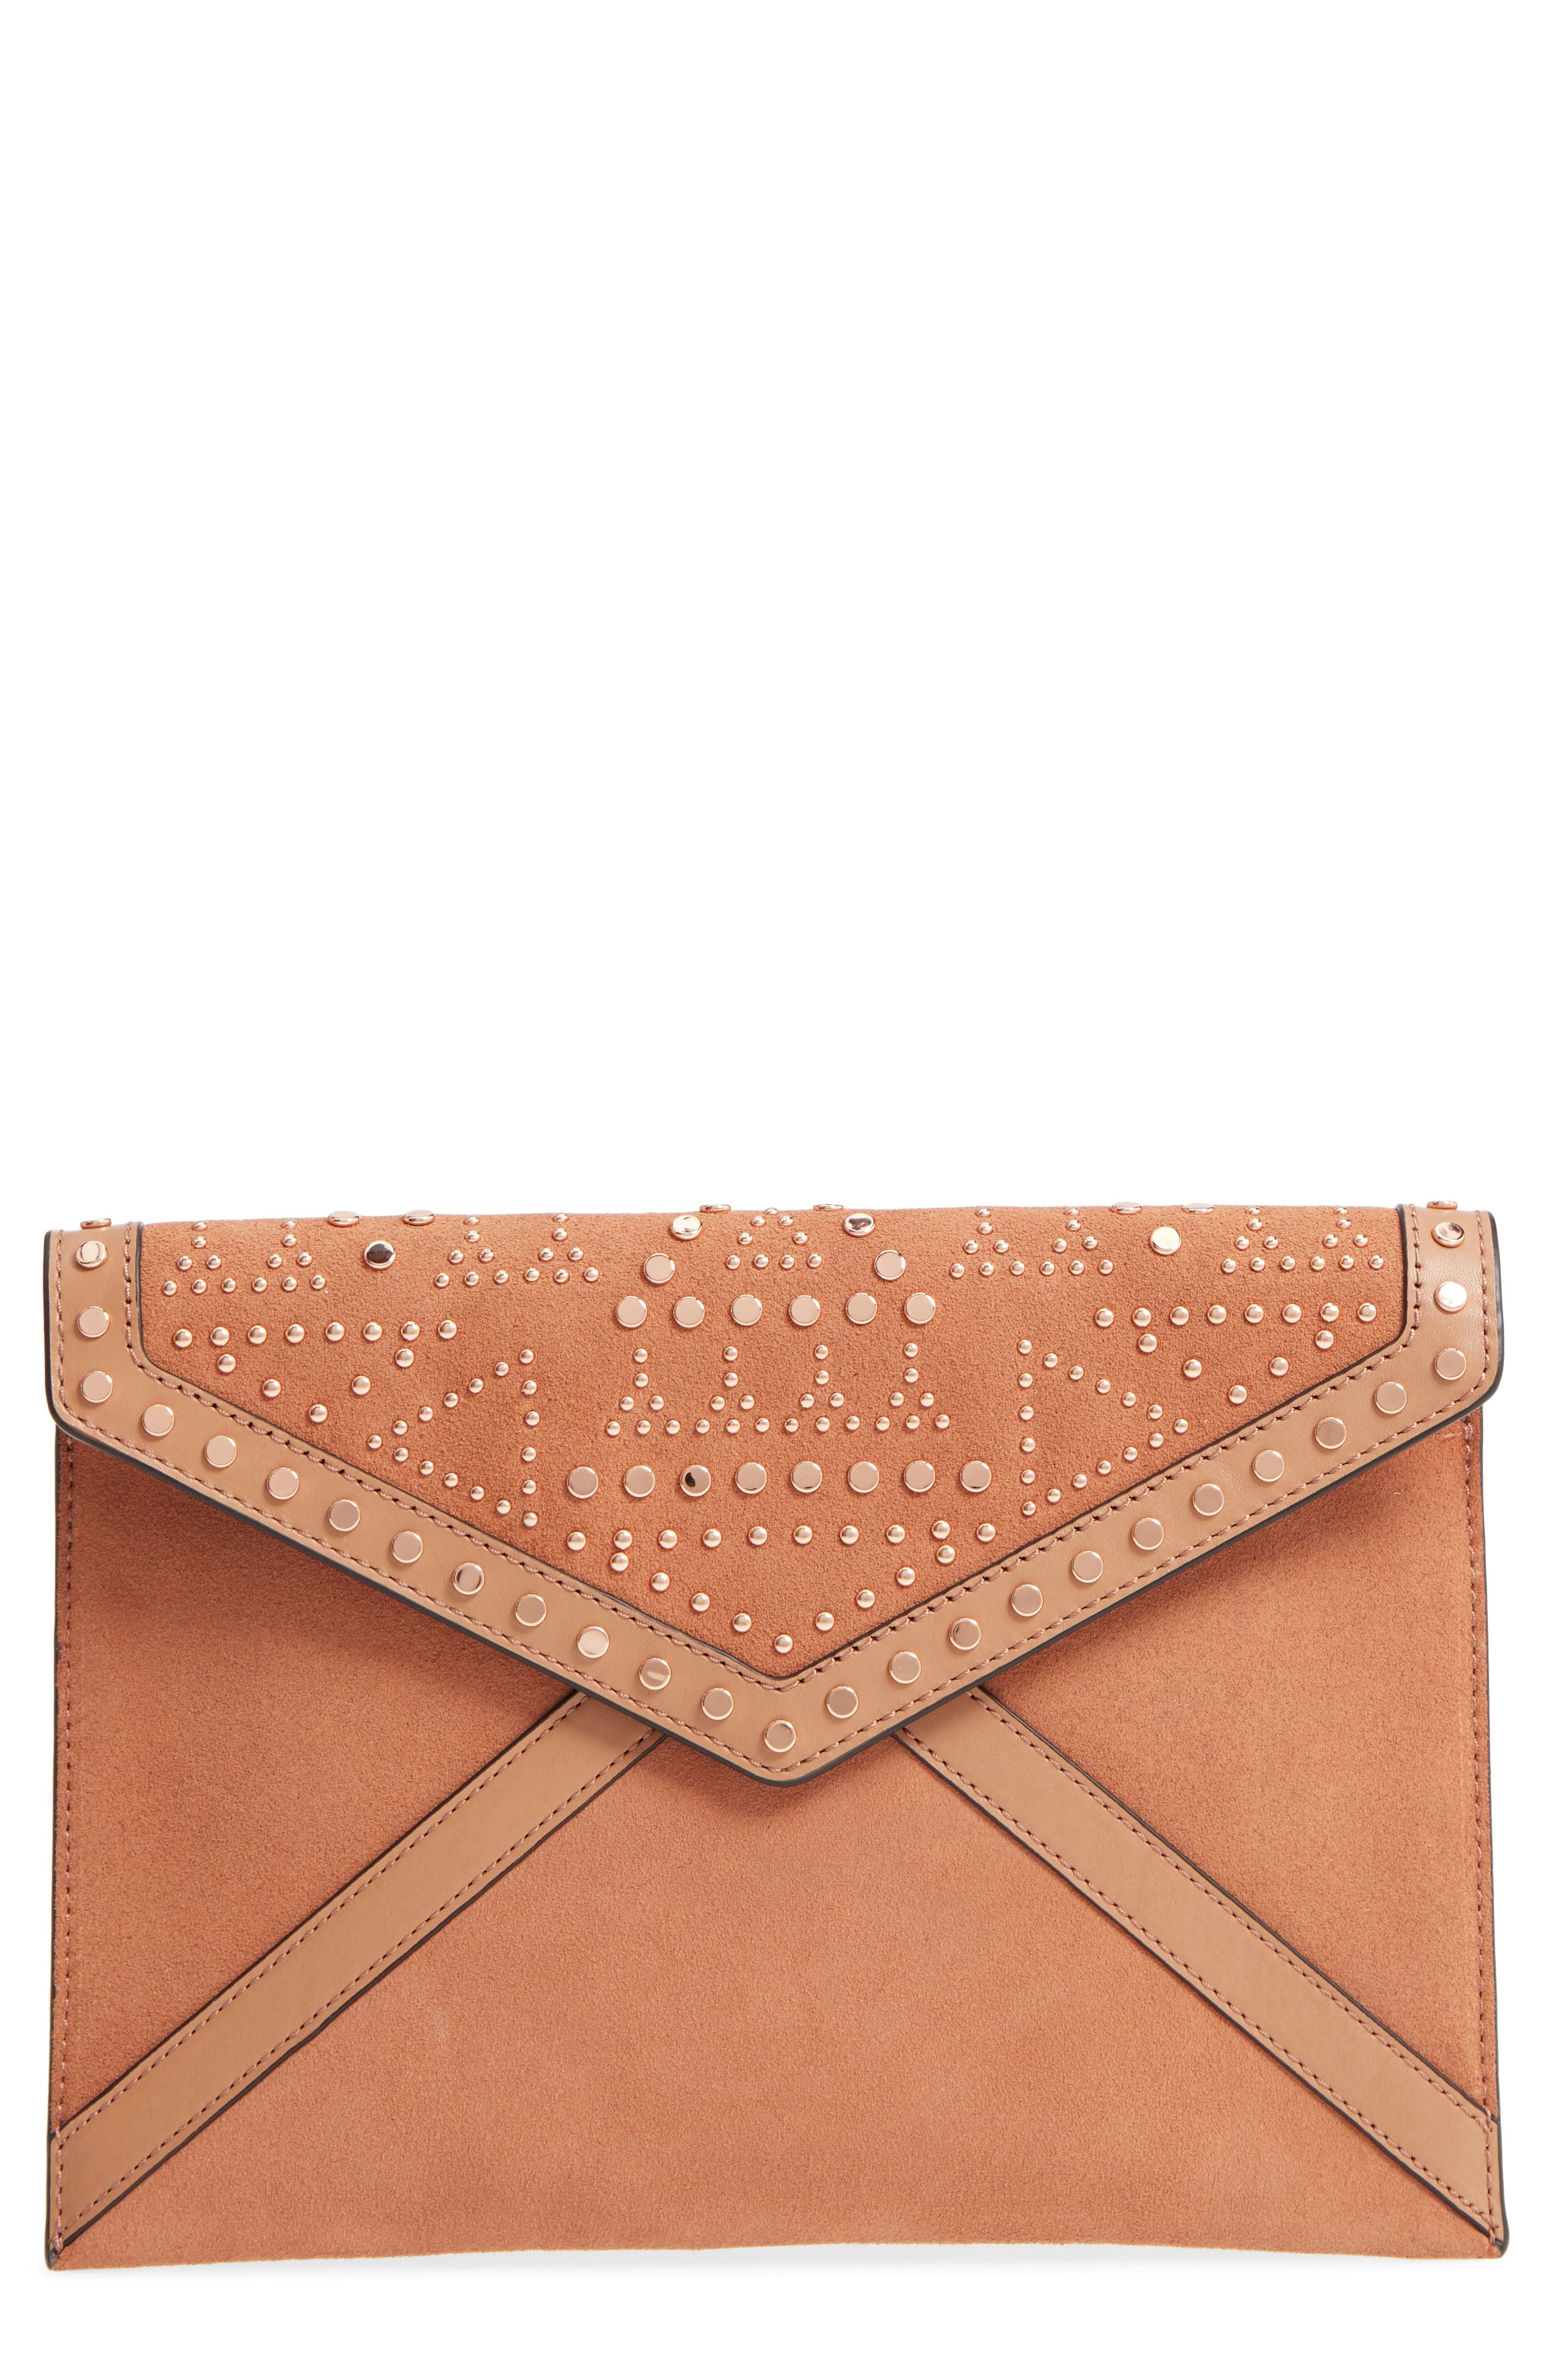 Leo Studded Leather & Suede Clutch,                             Main thumbnail 1, color,                             250